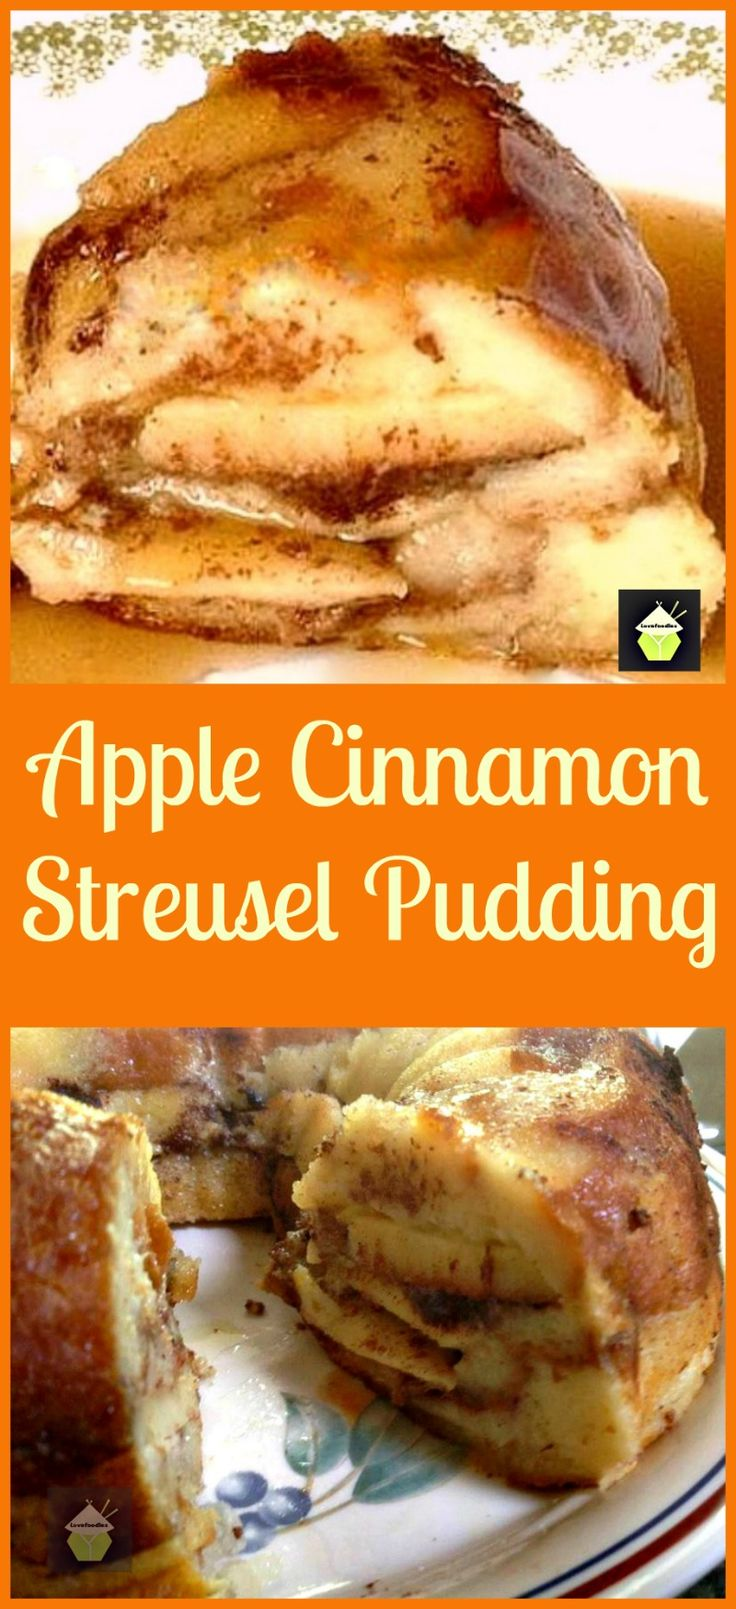 Fluffy Apple Streusel Swirl Pudding - A wonderful bread and butter dessert, best served warm with a drizzle of Maple Syrup or a blob of ice cream..or both! Similar to French Toast only much fluffier. This is a great one for freezing whole or in portions too!